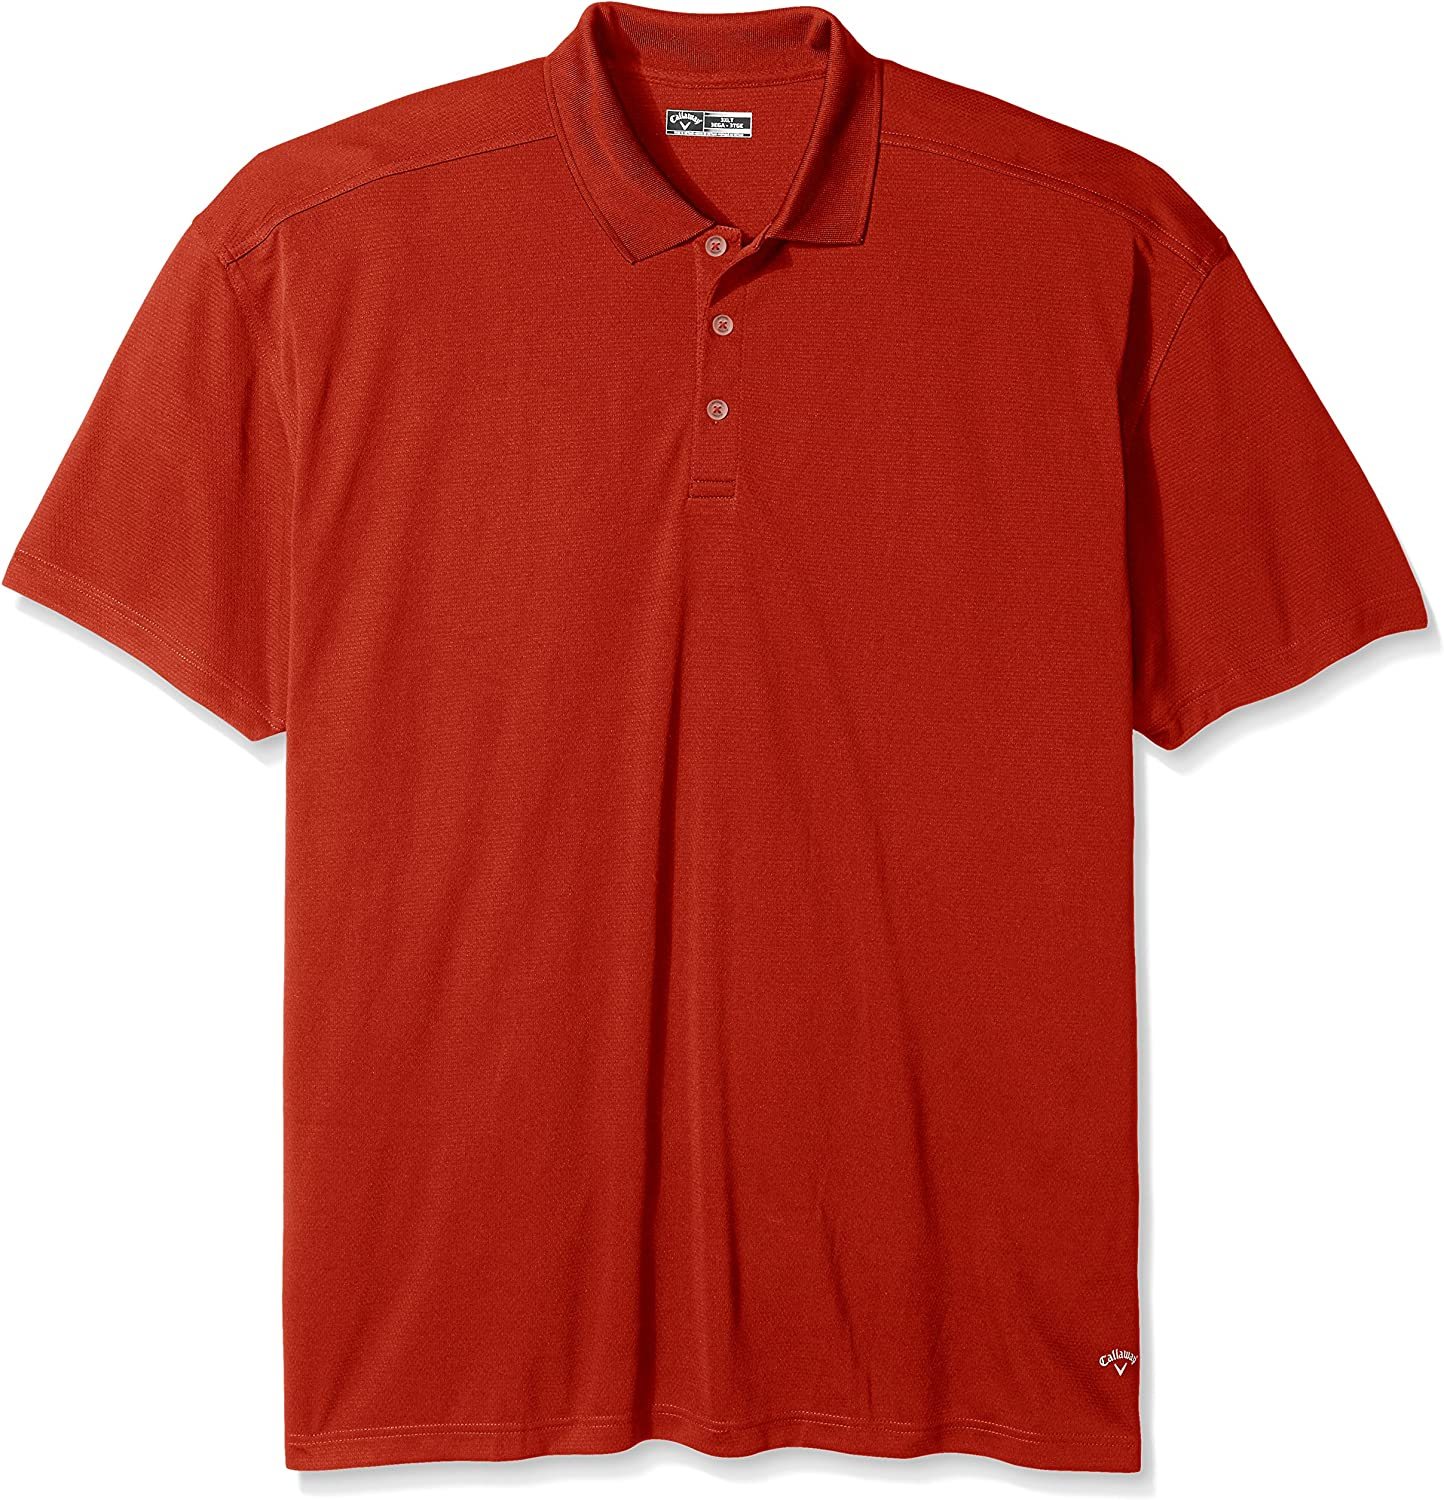 Callaway Herren Big & Tall Short Sleeve Opti Core Performance Polo